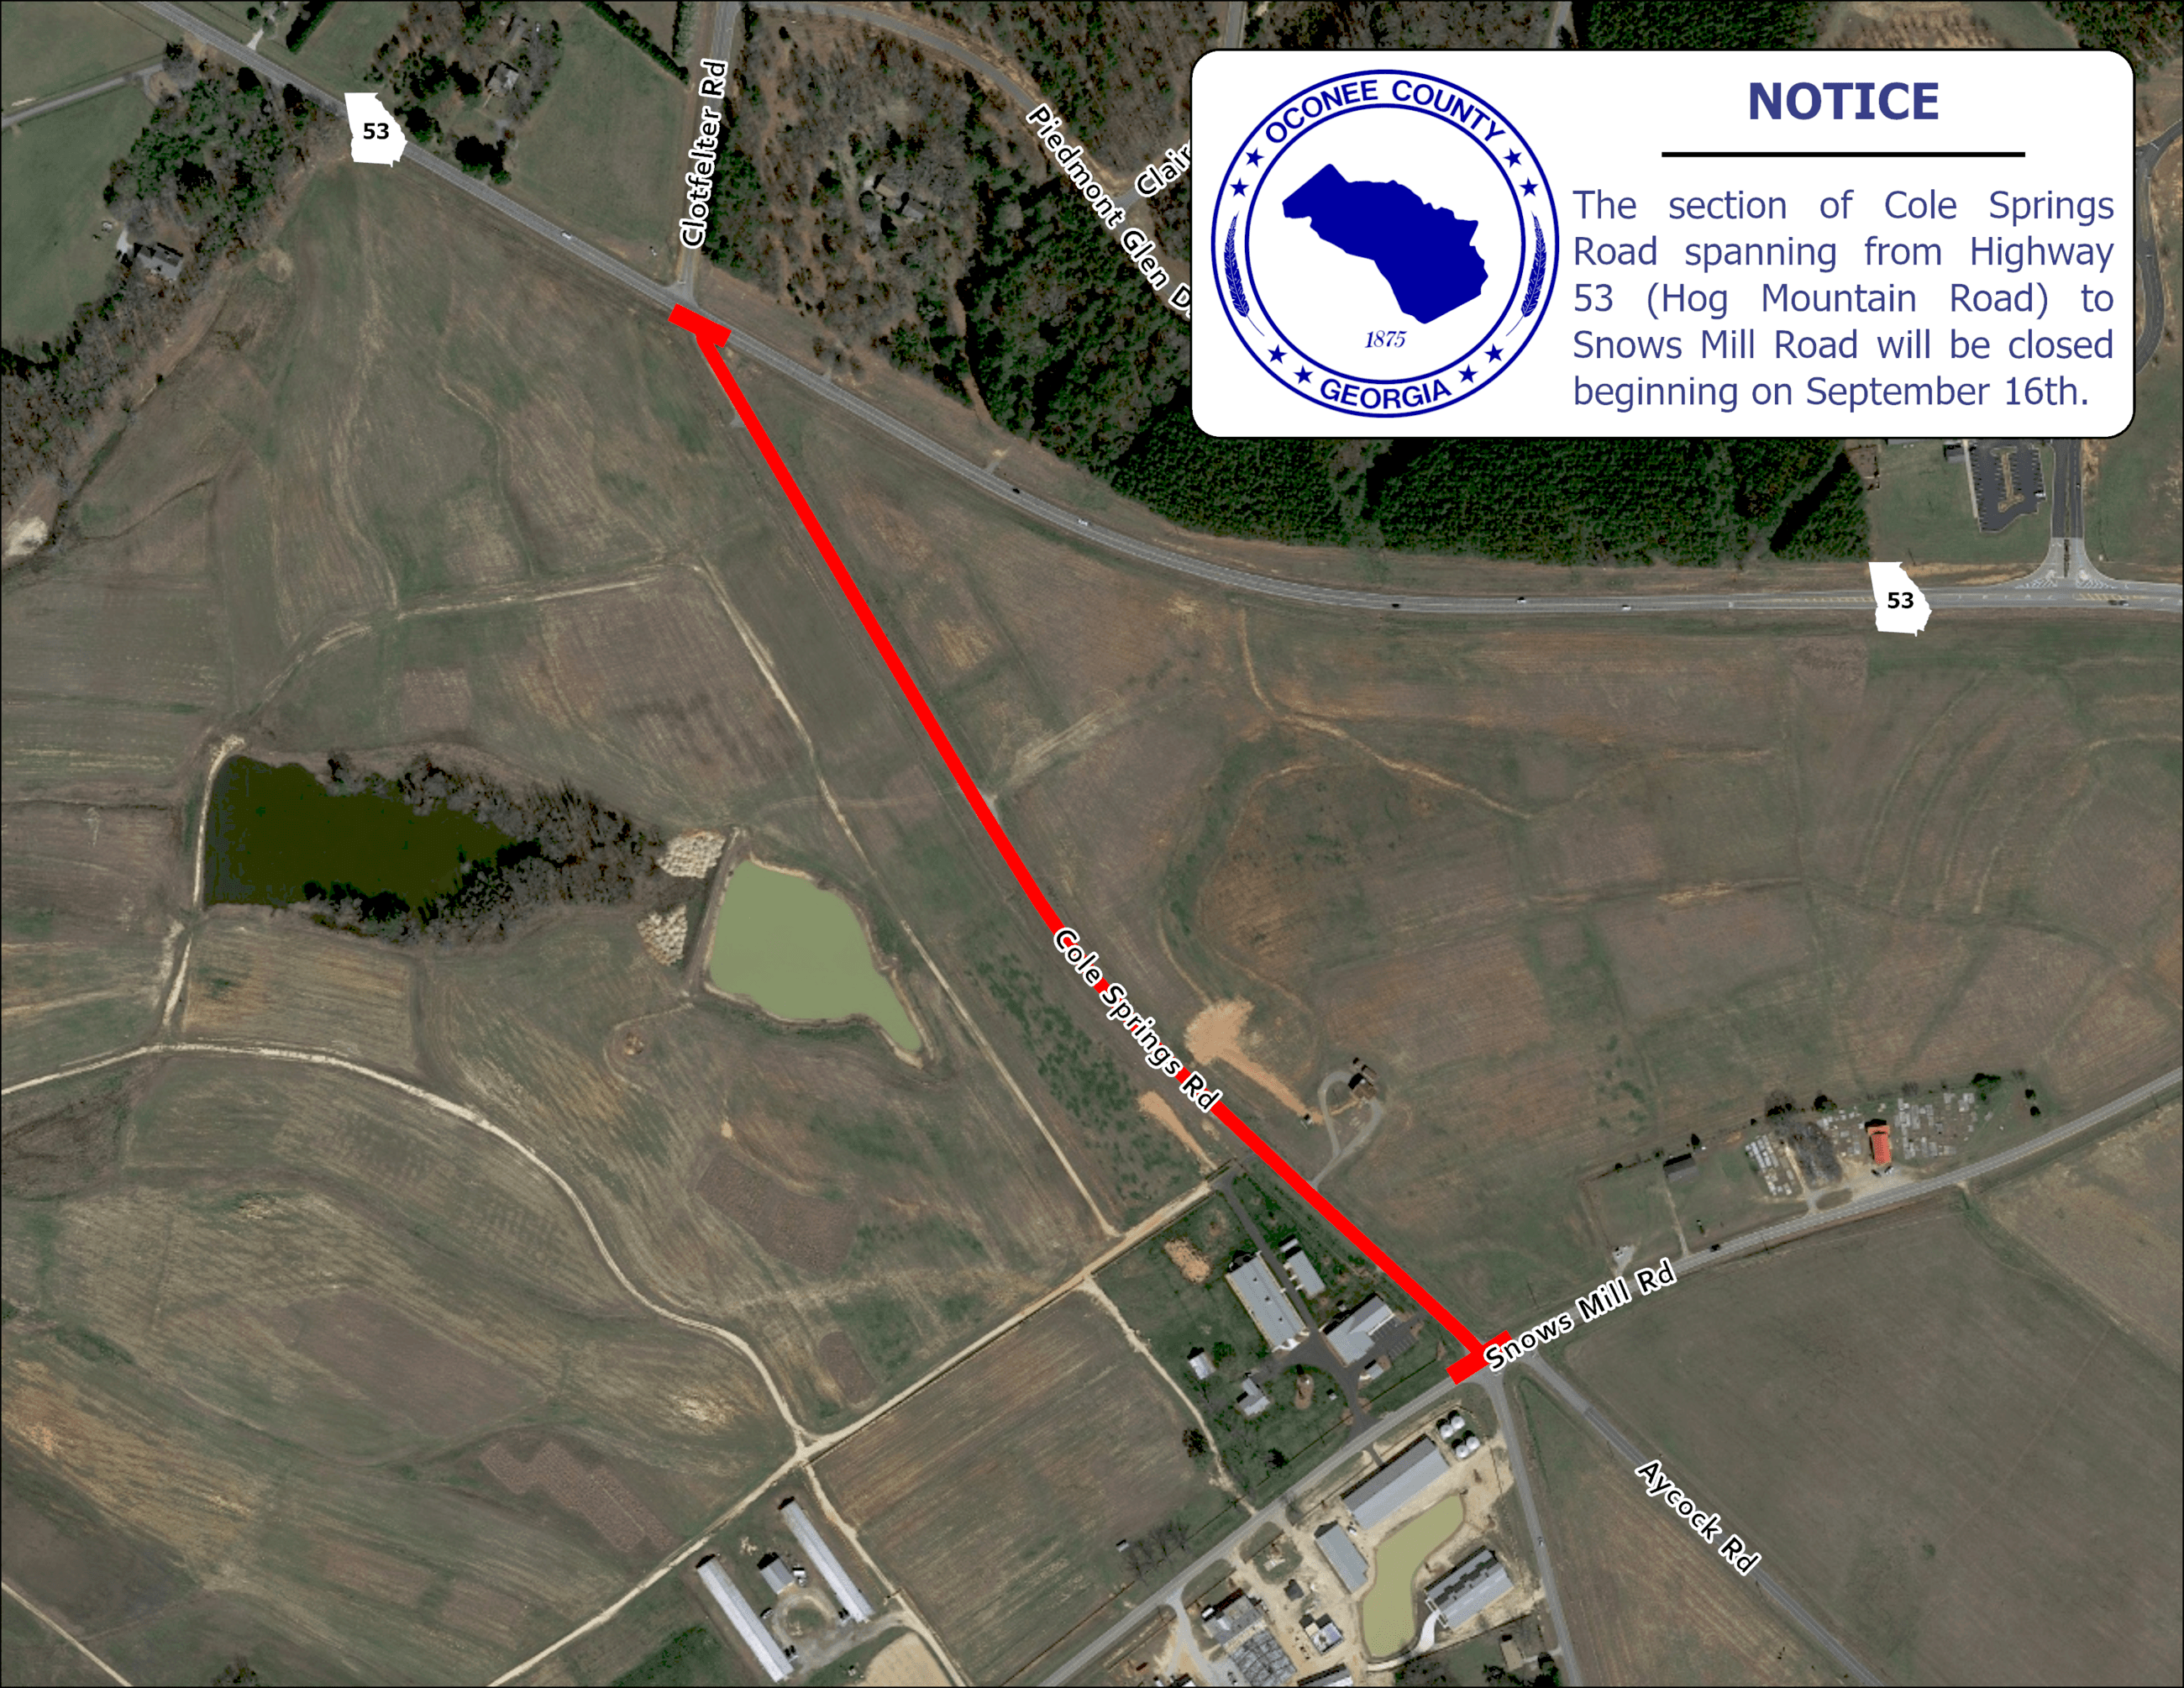 Map Showing Cole Springs Road Closure